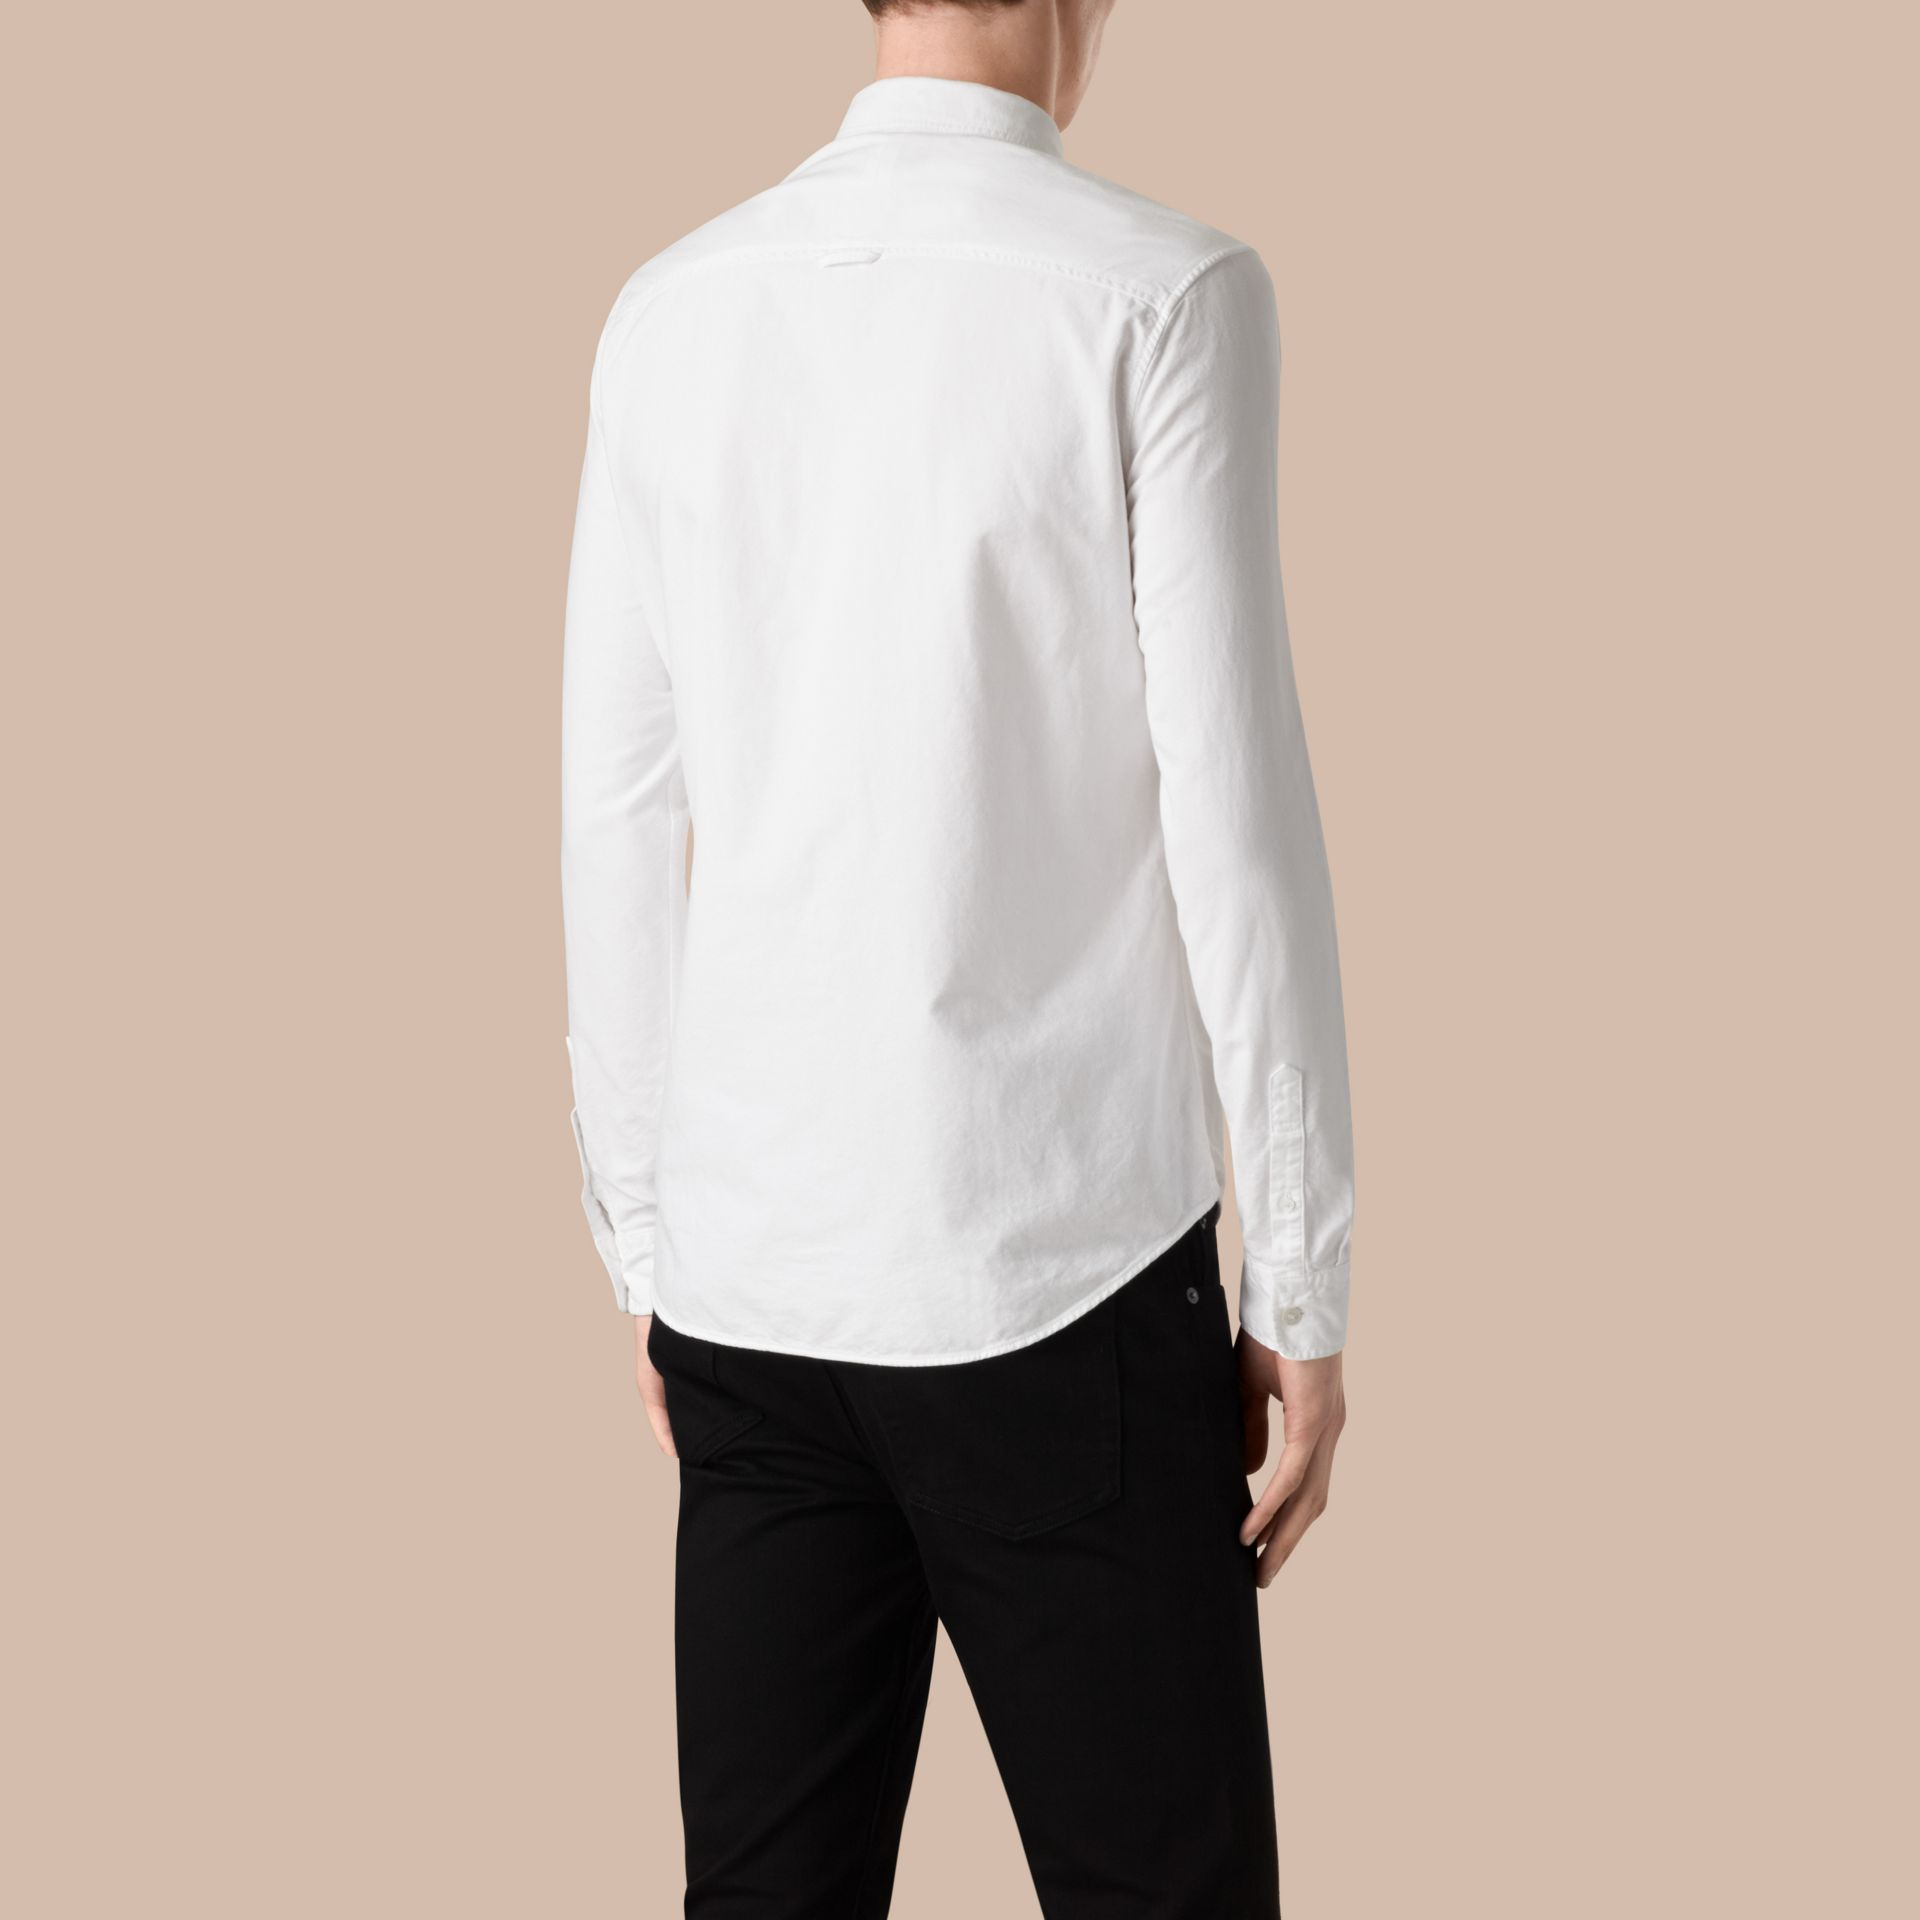 Cotton Oxford Shirt in White - Men | Burberry Hong Kong - gallery image 3